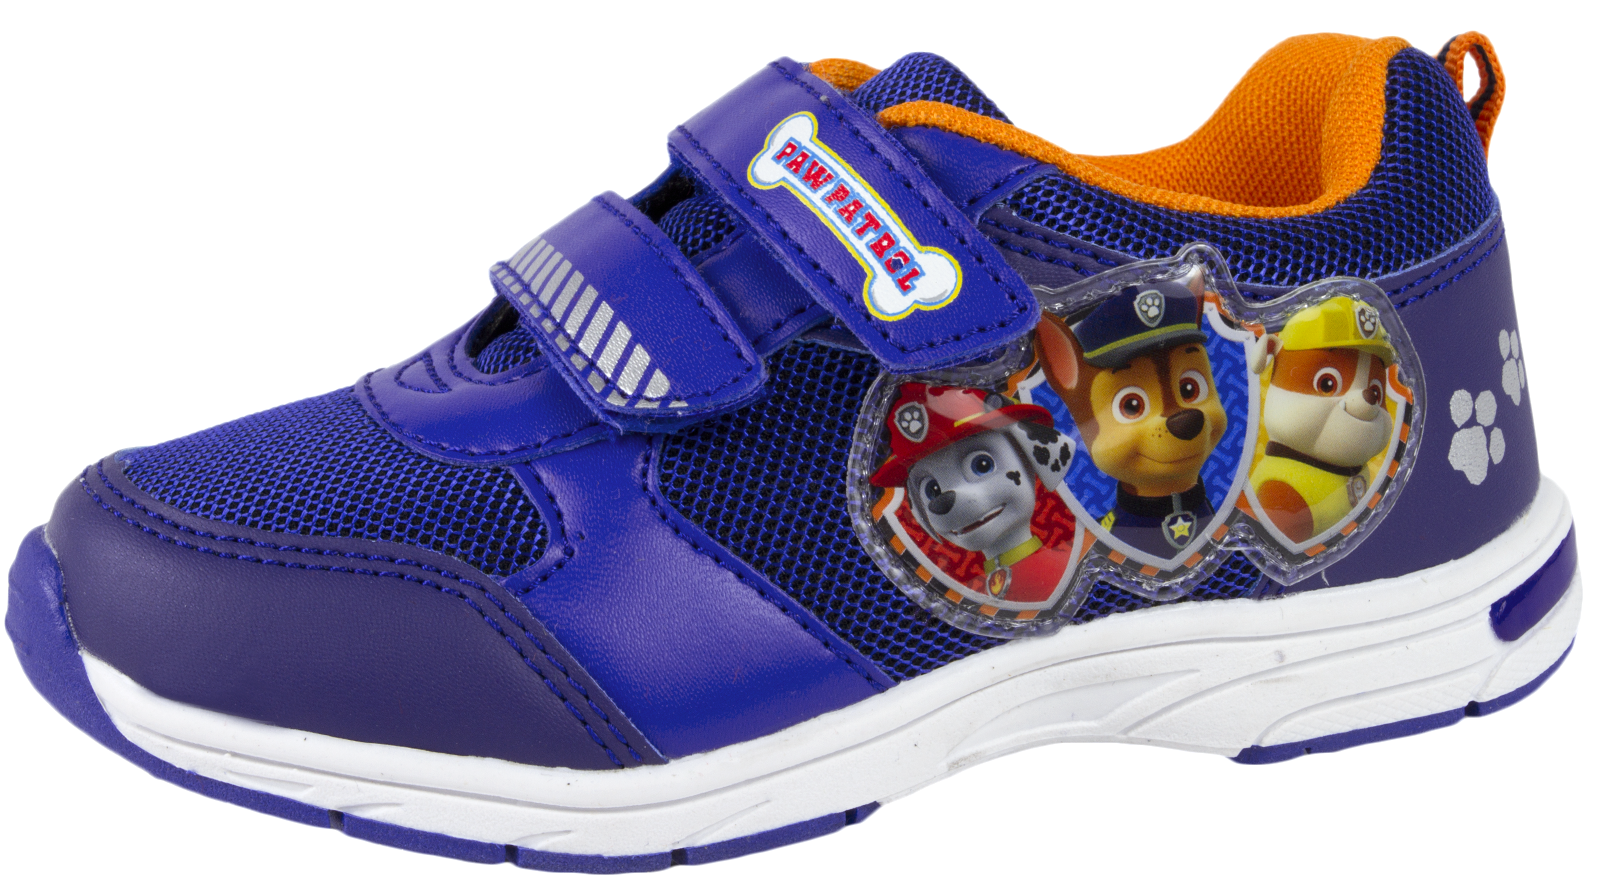 Details about Paw Patrol Trainers Skate Canvas Pumps Shoes Boys Hi Tops Ankle Boots Kids Size